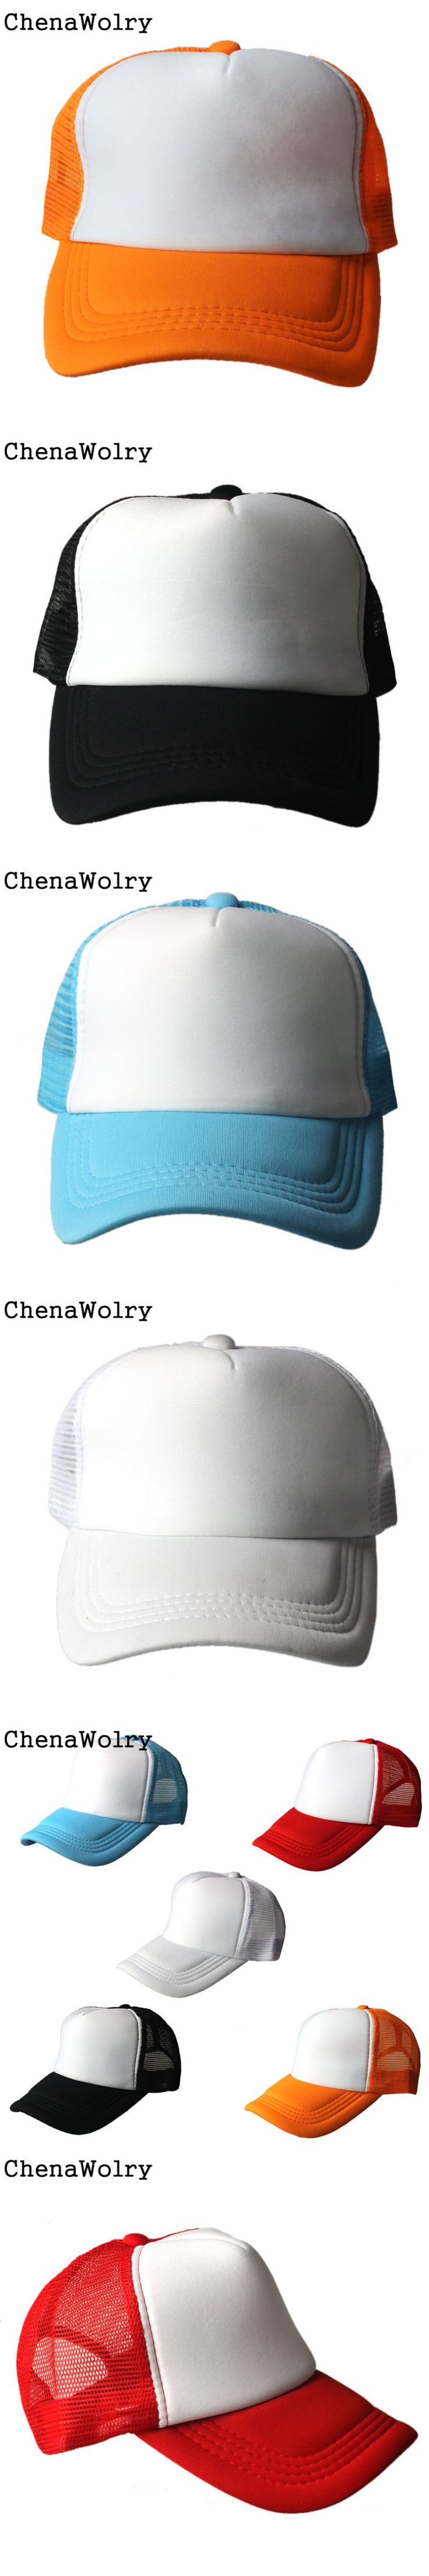 ChenaWolry 1PC 100% Brand New Fashion Accessories Mesh Baseball Cap Hat Blank Curved Visor Hat Adjustable Blank Color O 18